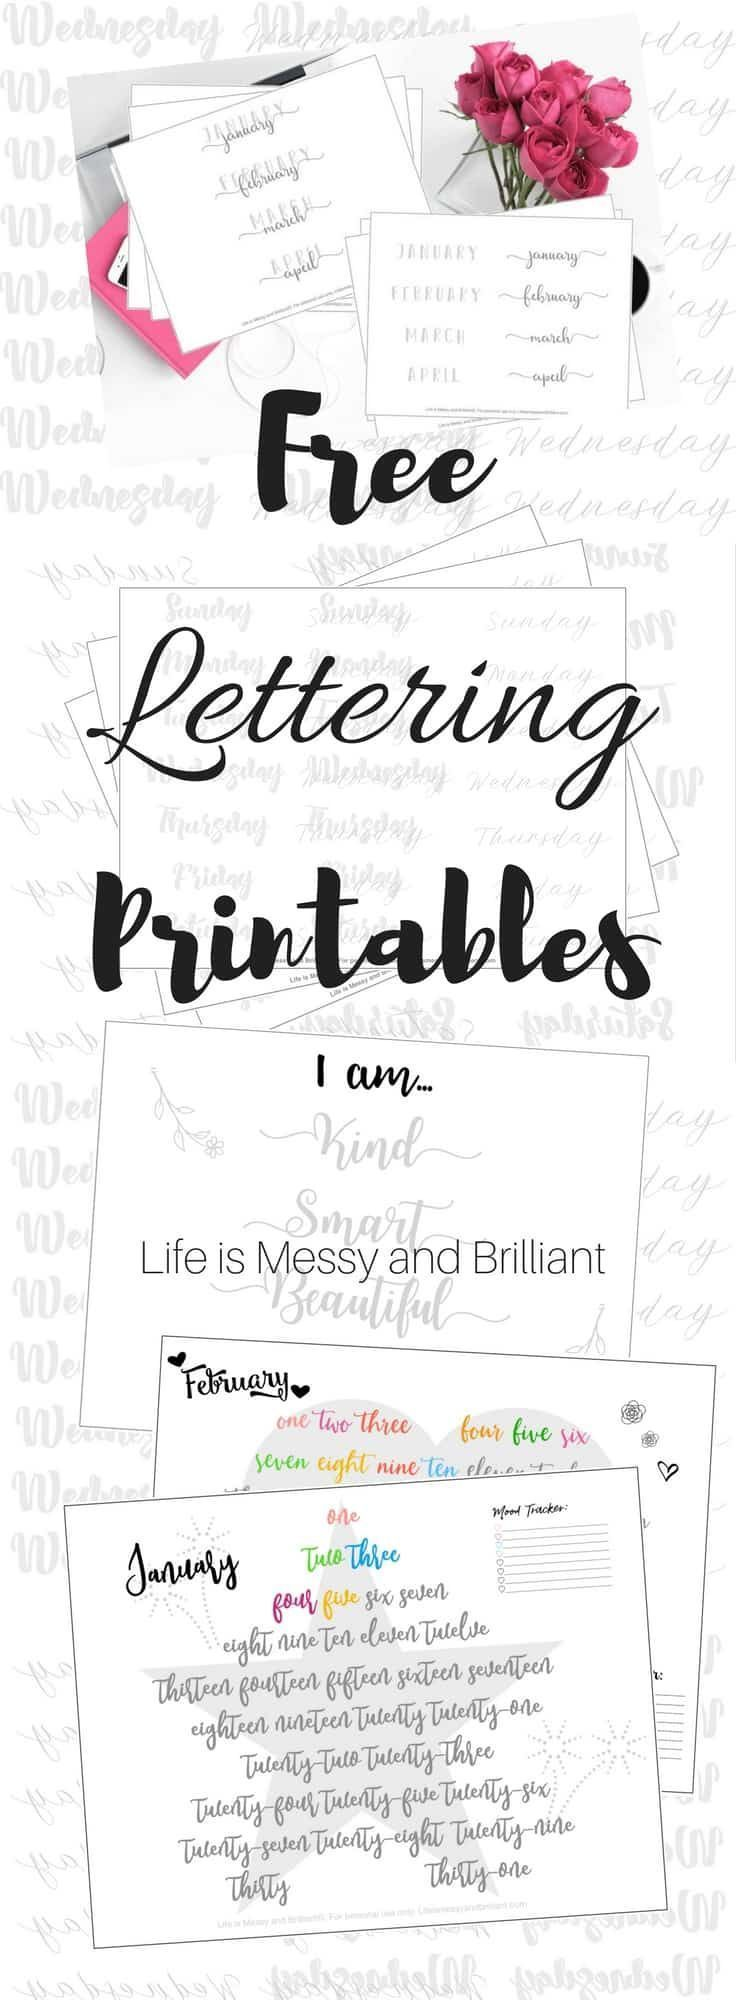 Free Hand Lettering Practice Worksheets In 2020 Hand Lettering Practice Sheets Hand Lettering Practice Hand Lettering Printables [ 2000 x 736 Pixel ]